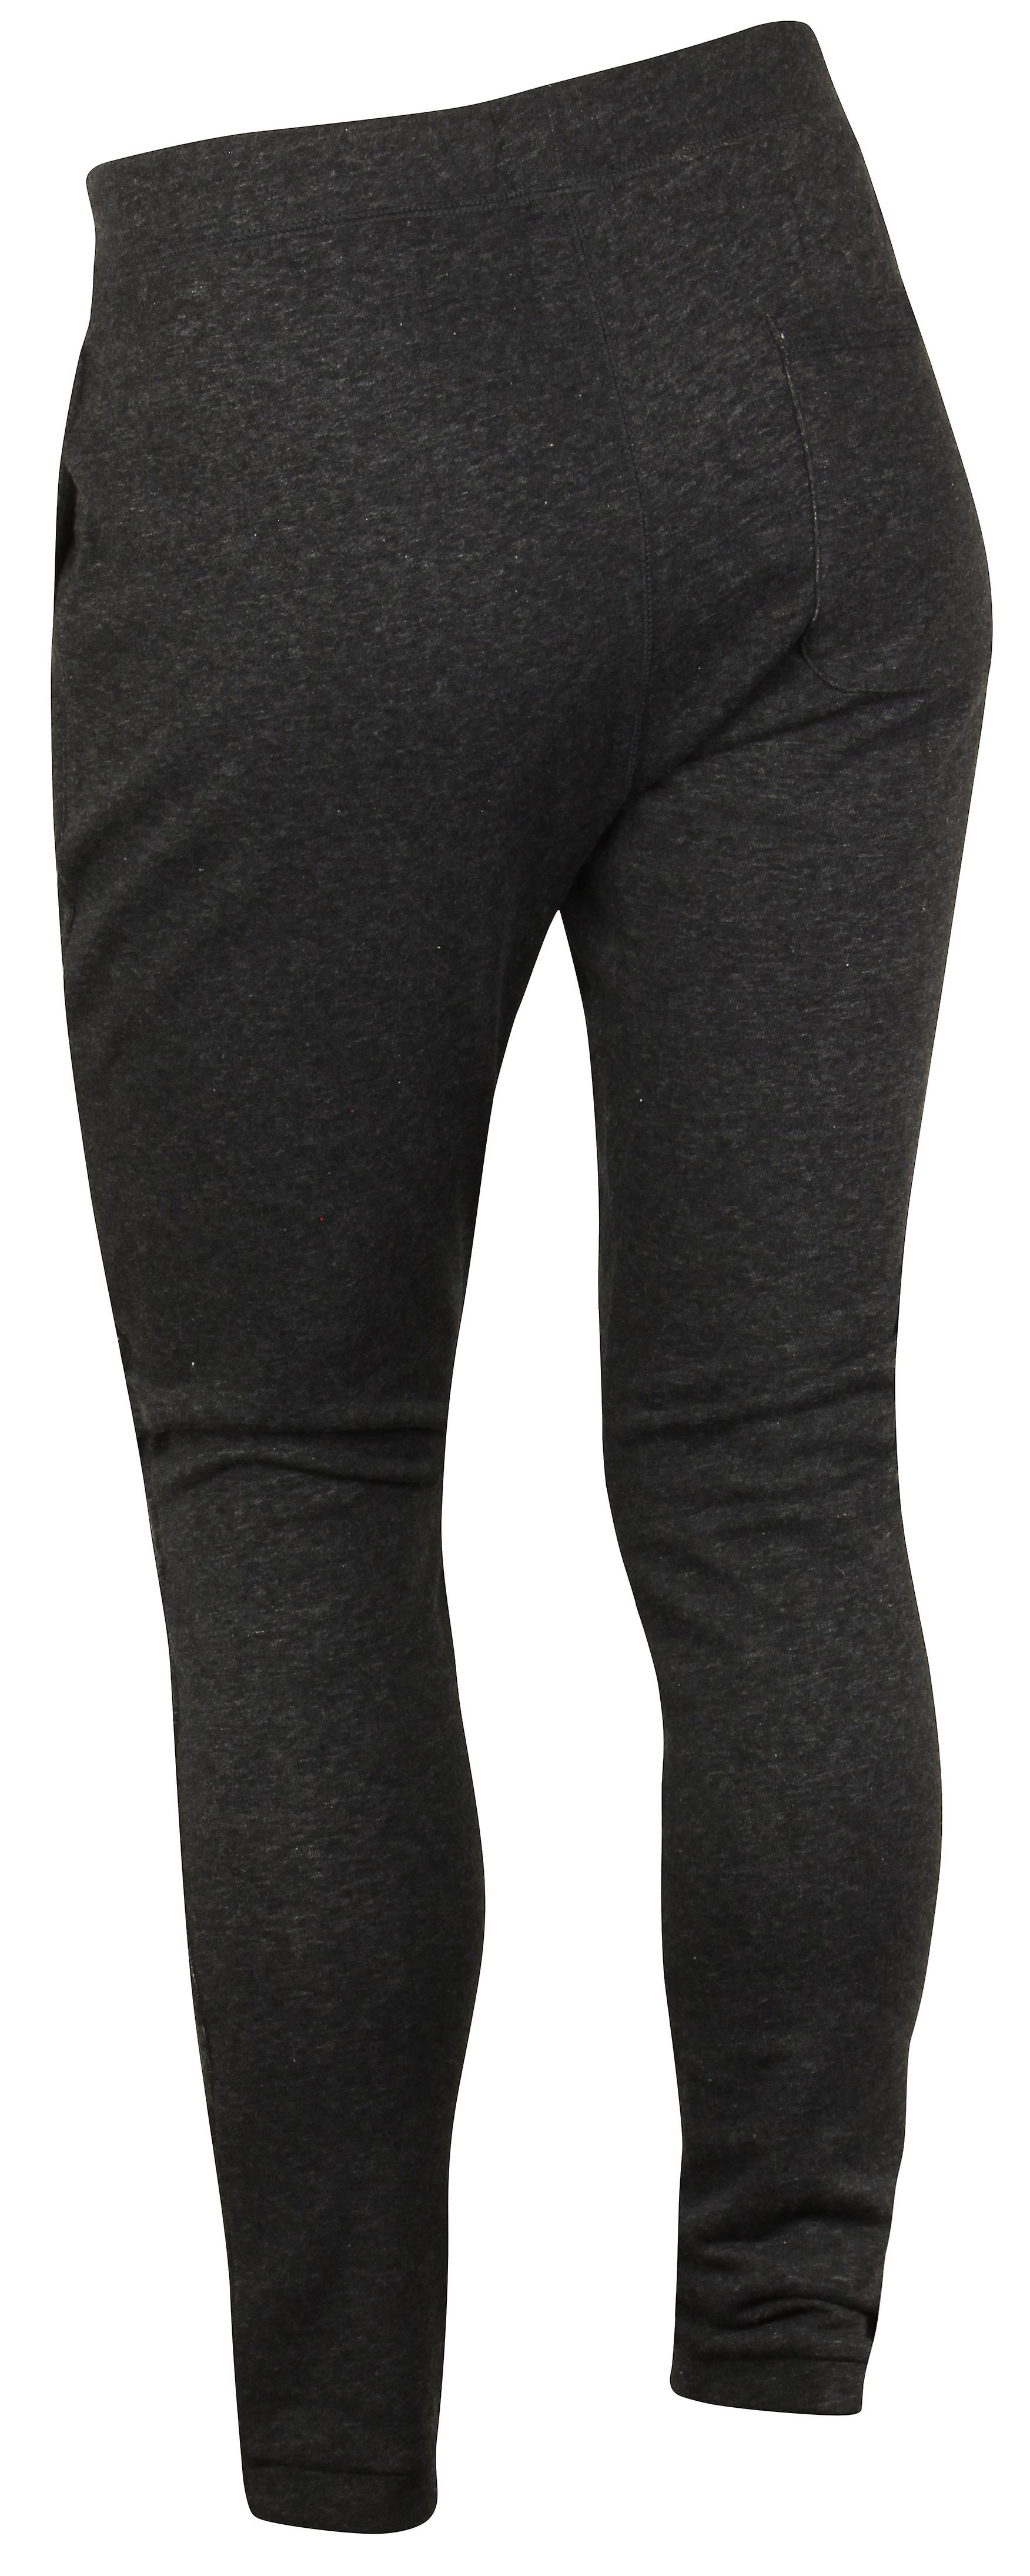 Quiksilver Mens Everyday Fonic Fleece Sweat Pants - Black